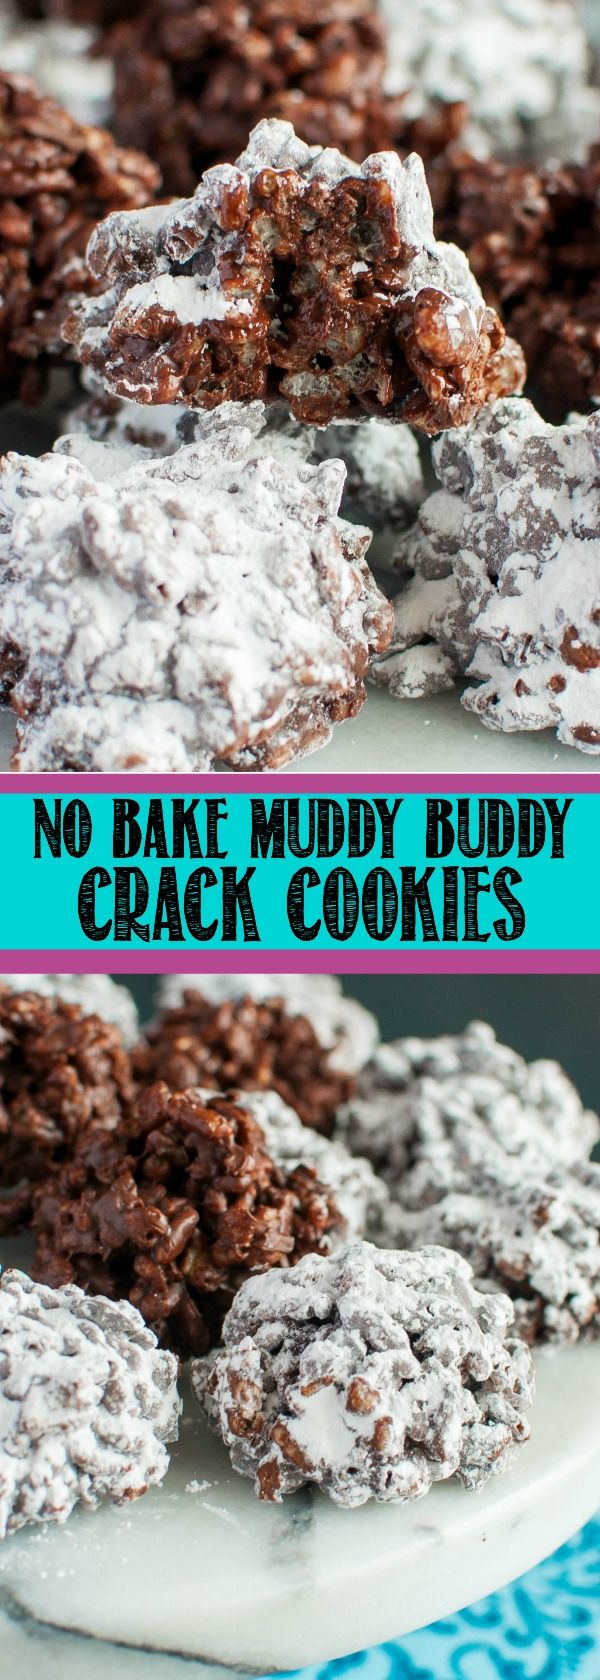 No Bake Muddy Buddy Crack Cookies